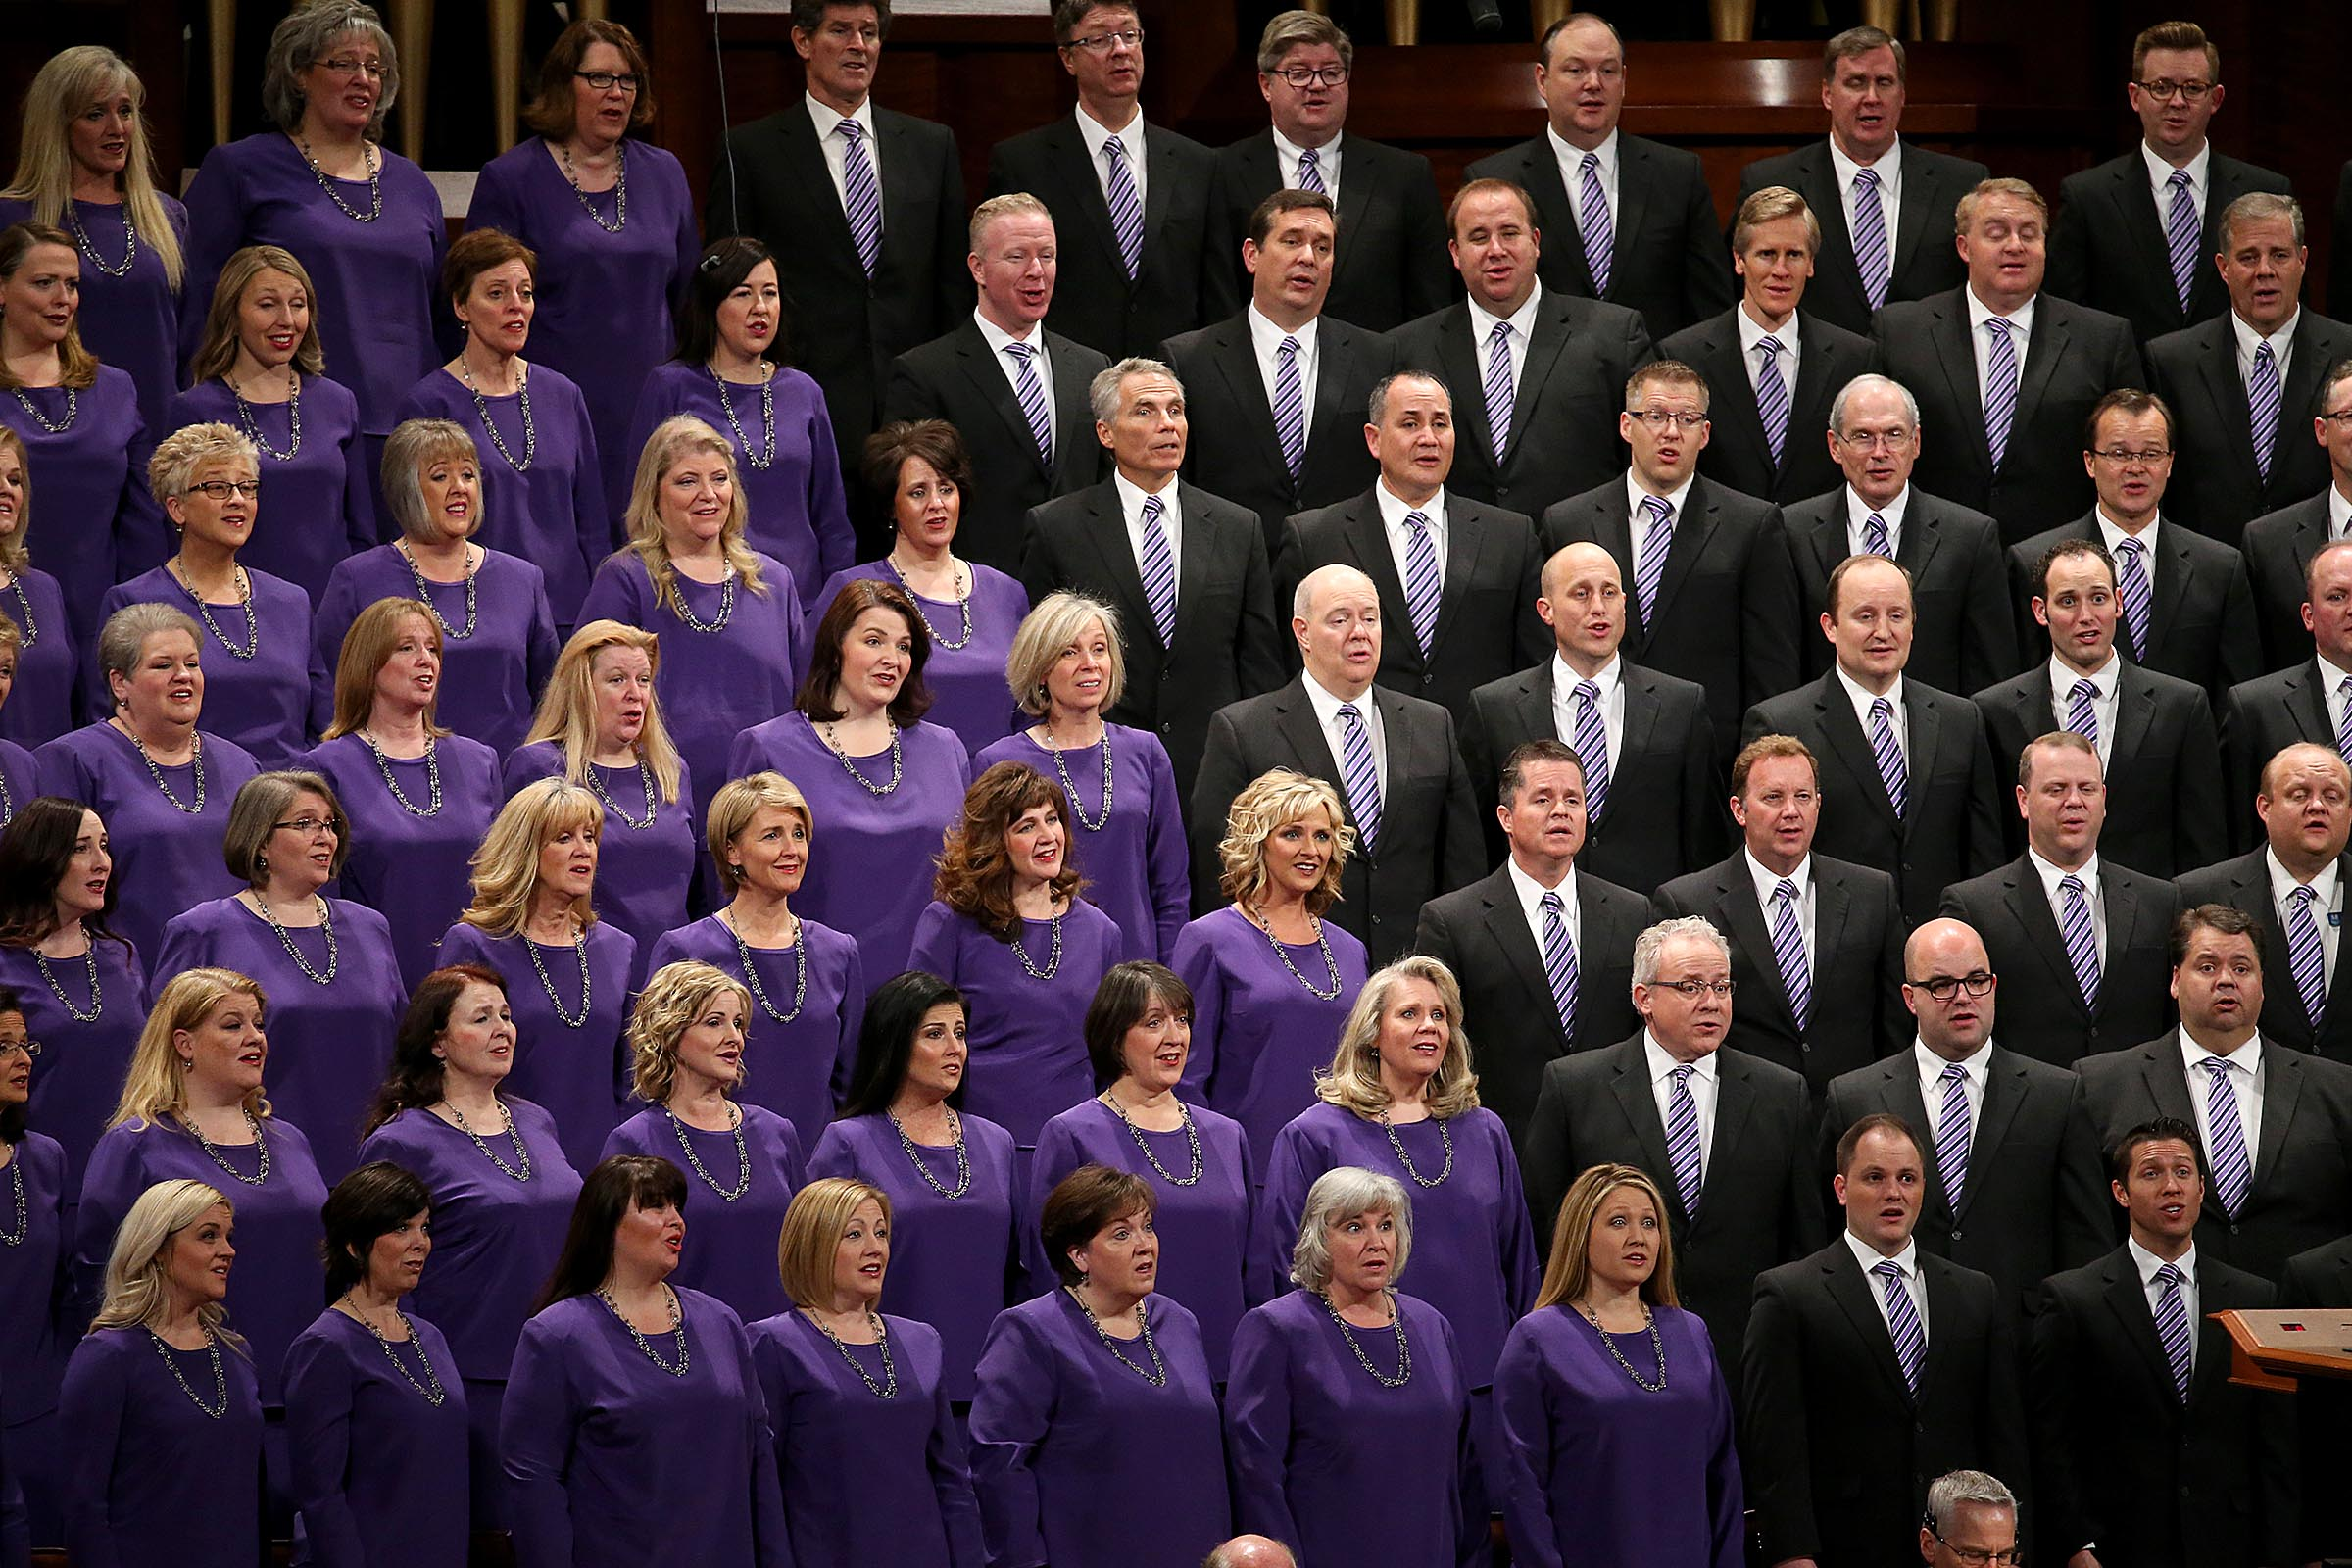 The Tabernacle Choir sings at Church President Thomas S. Monson's funeral at the Conference Center in Salt Lake City on Friday, Jan. 12, 2018.